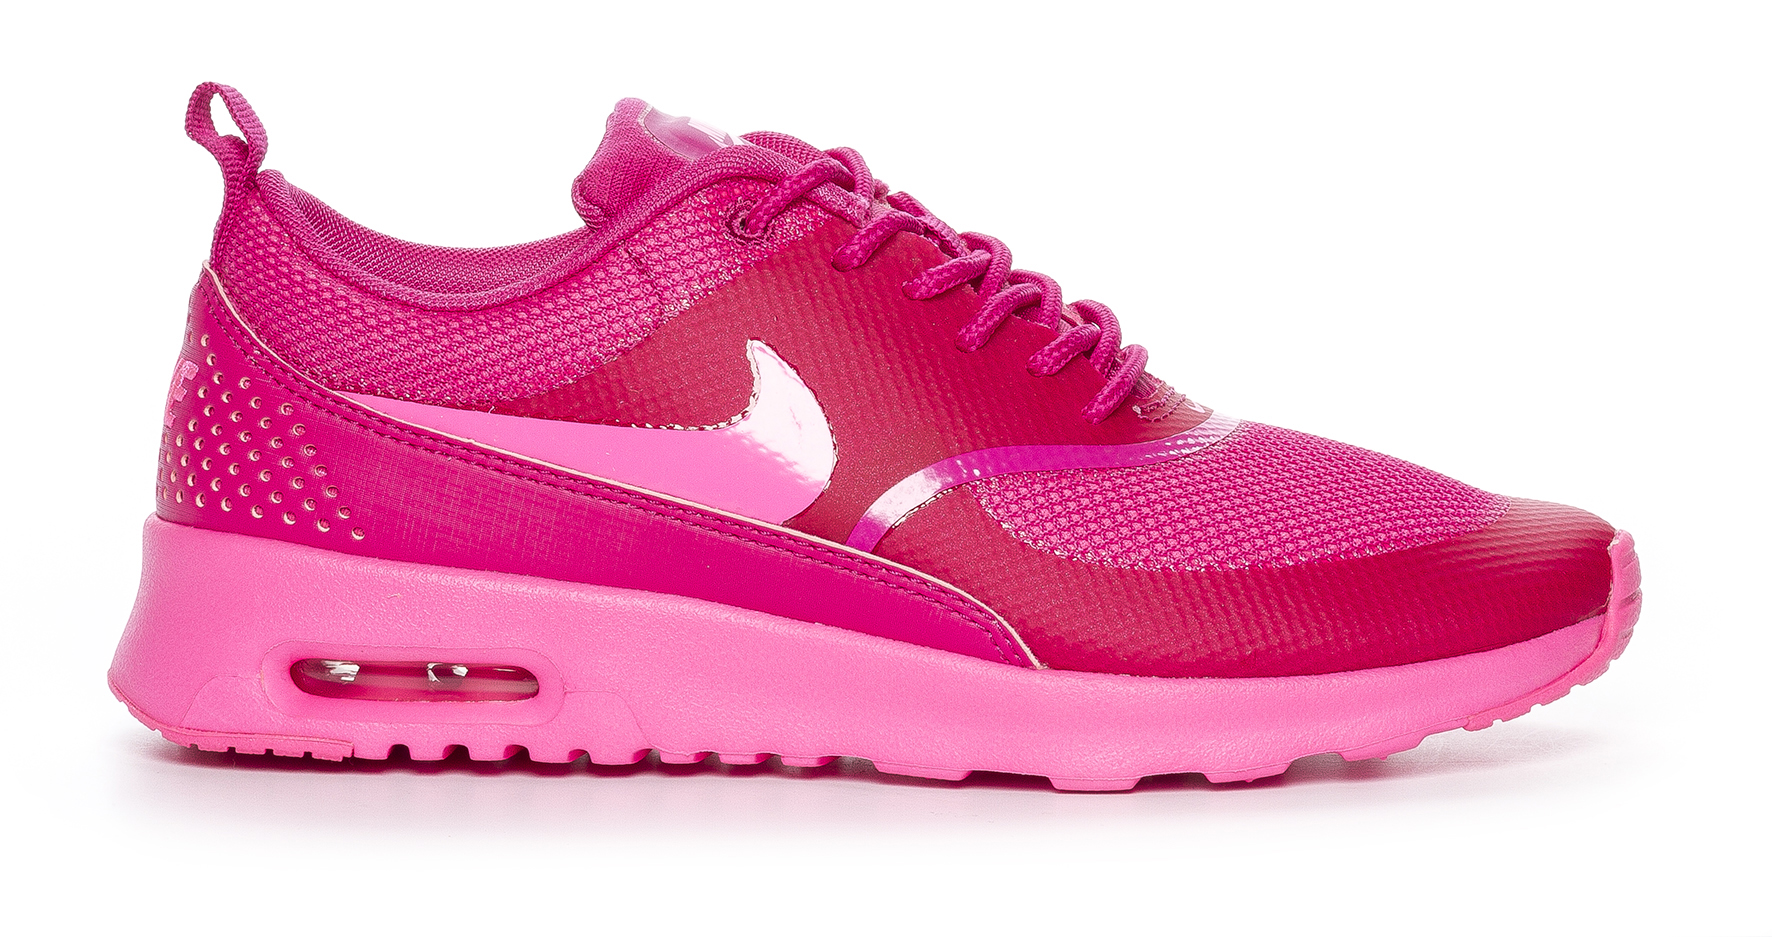 best sneakers a1257 f8767 ... new arrivals nike air max thea rosa 291130 feetfirst.se c8030 56296